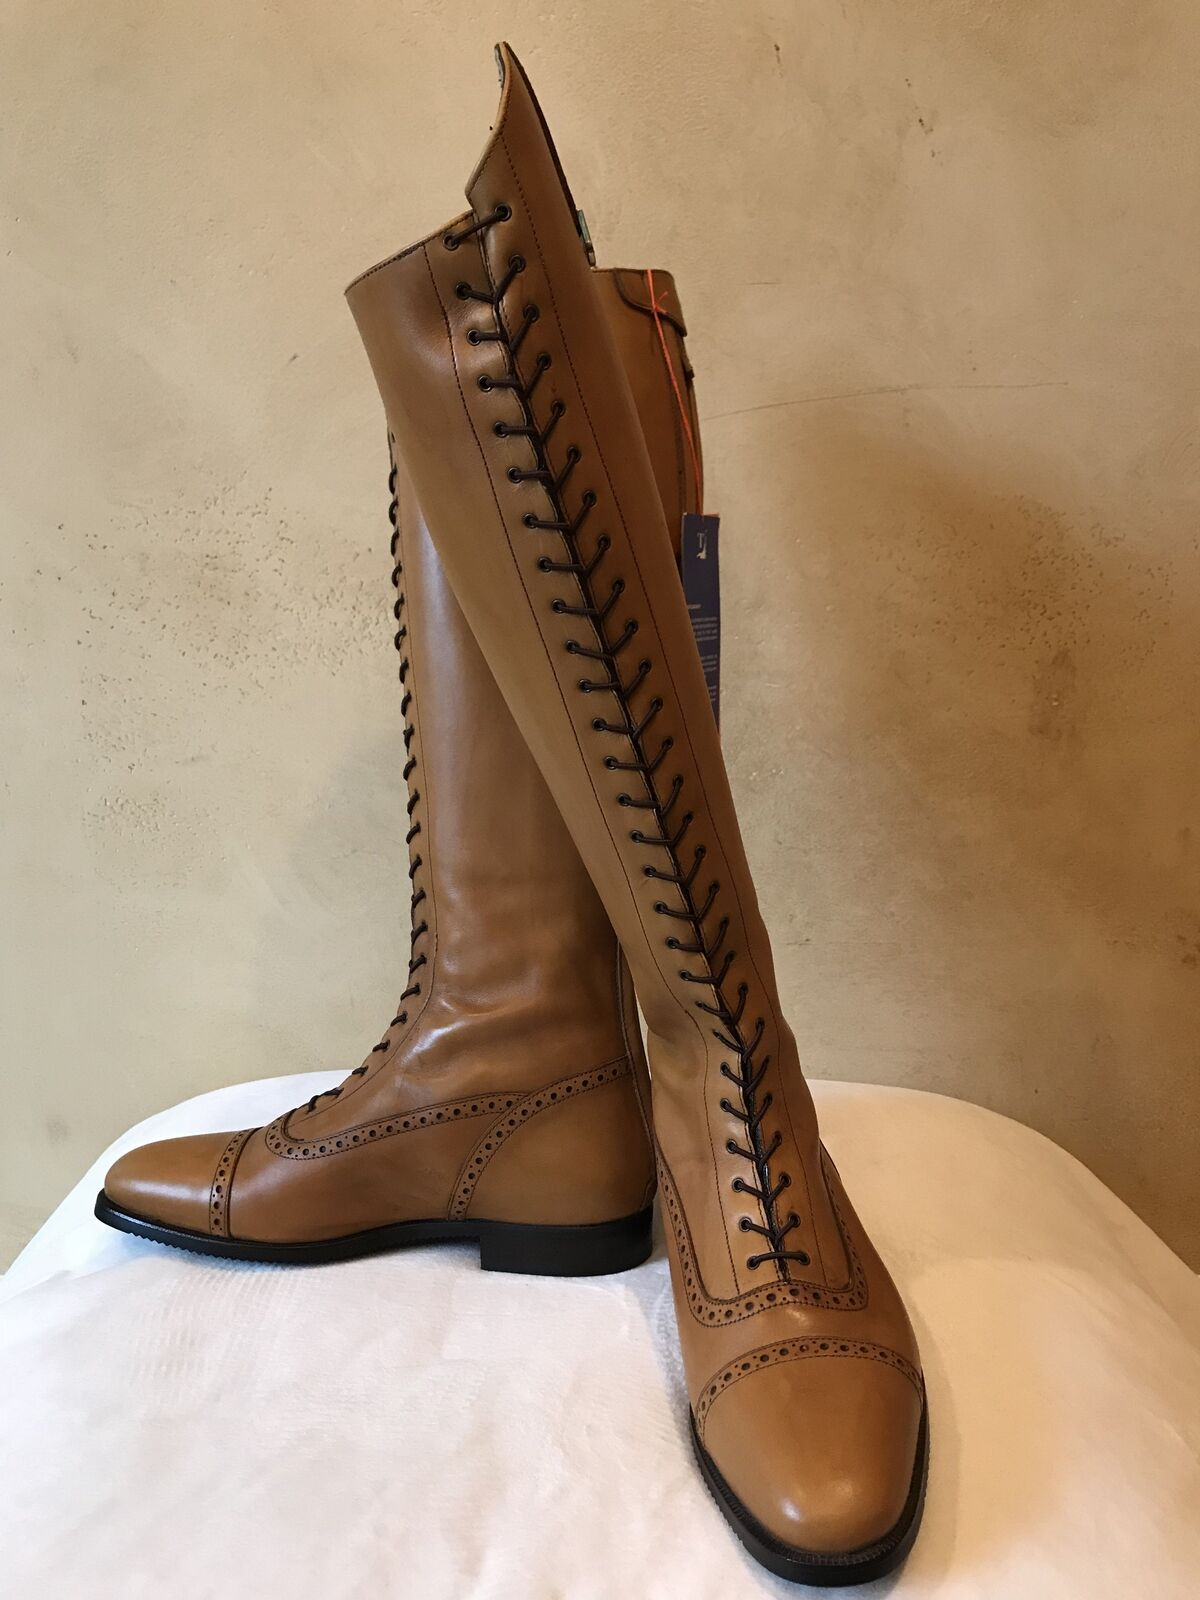 Tucci Design, Gina Field Boots, Size 40 - New  with Tags  factory direct sales